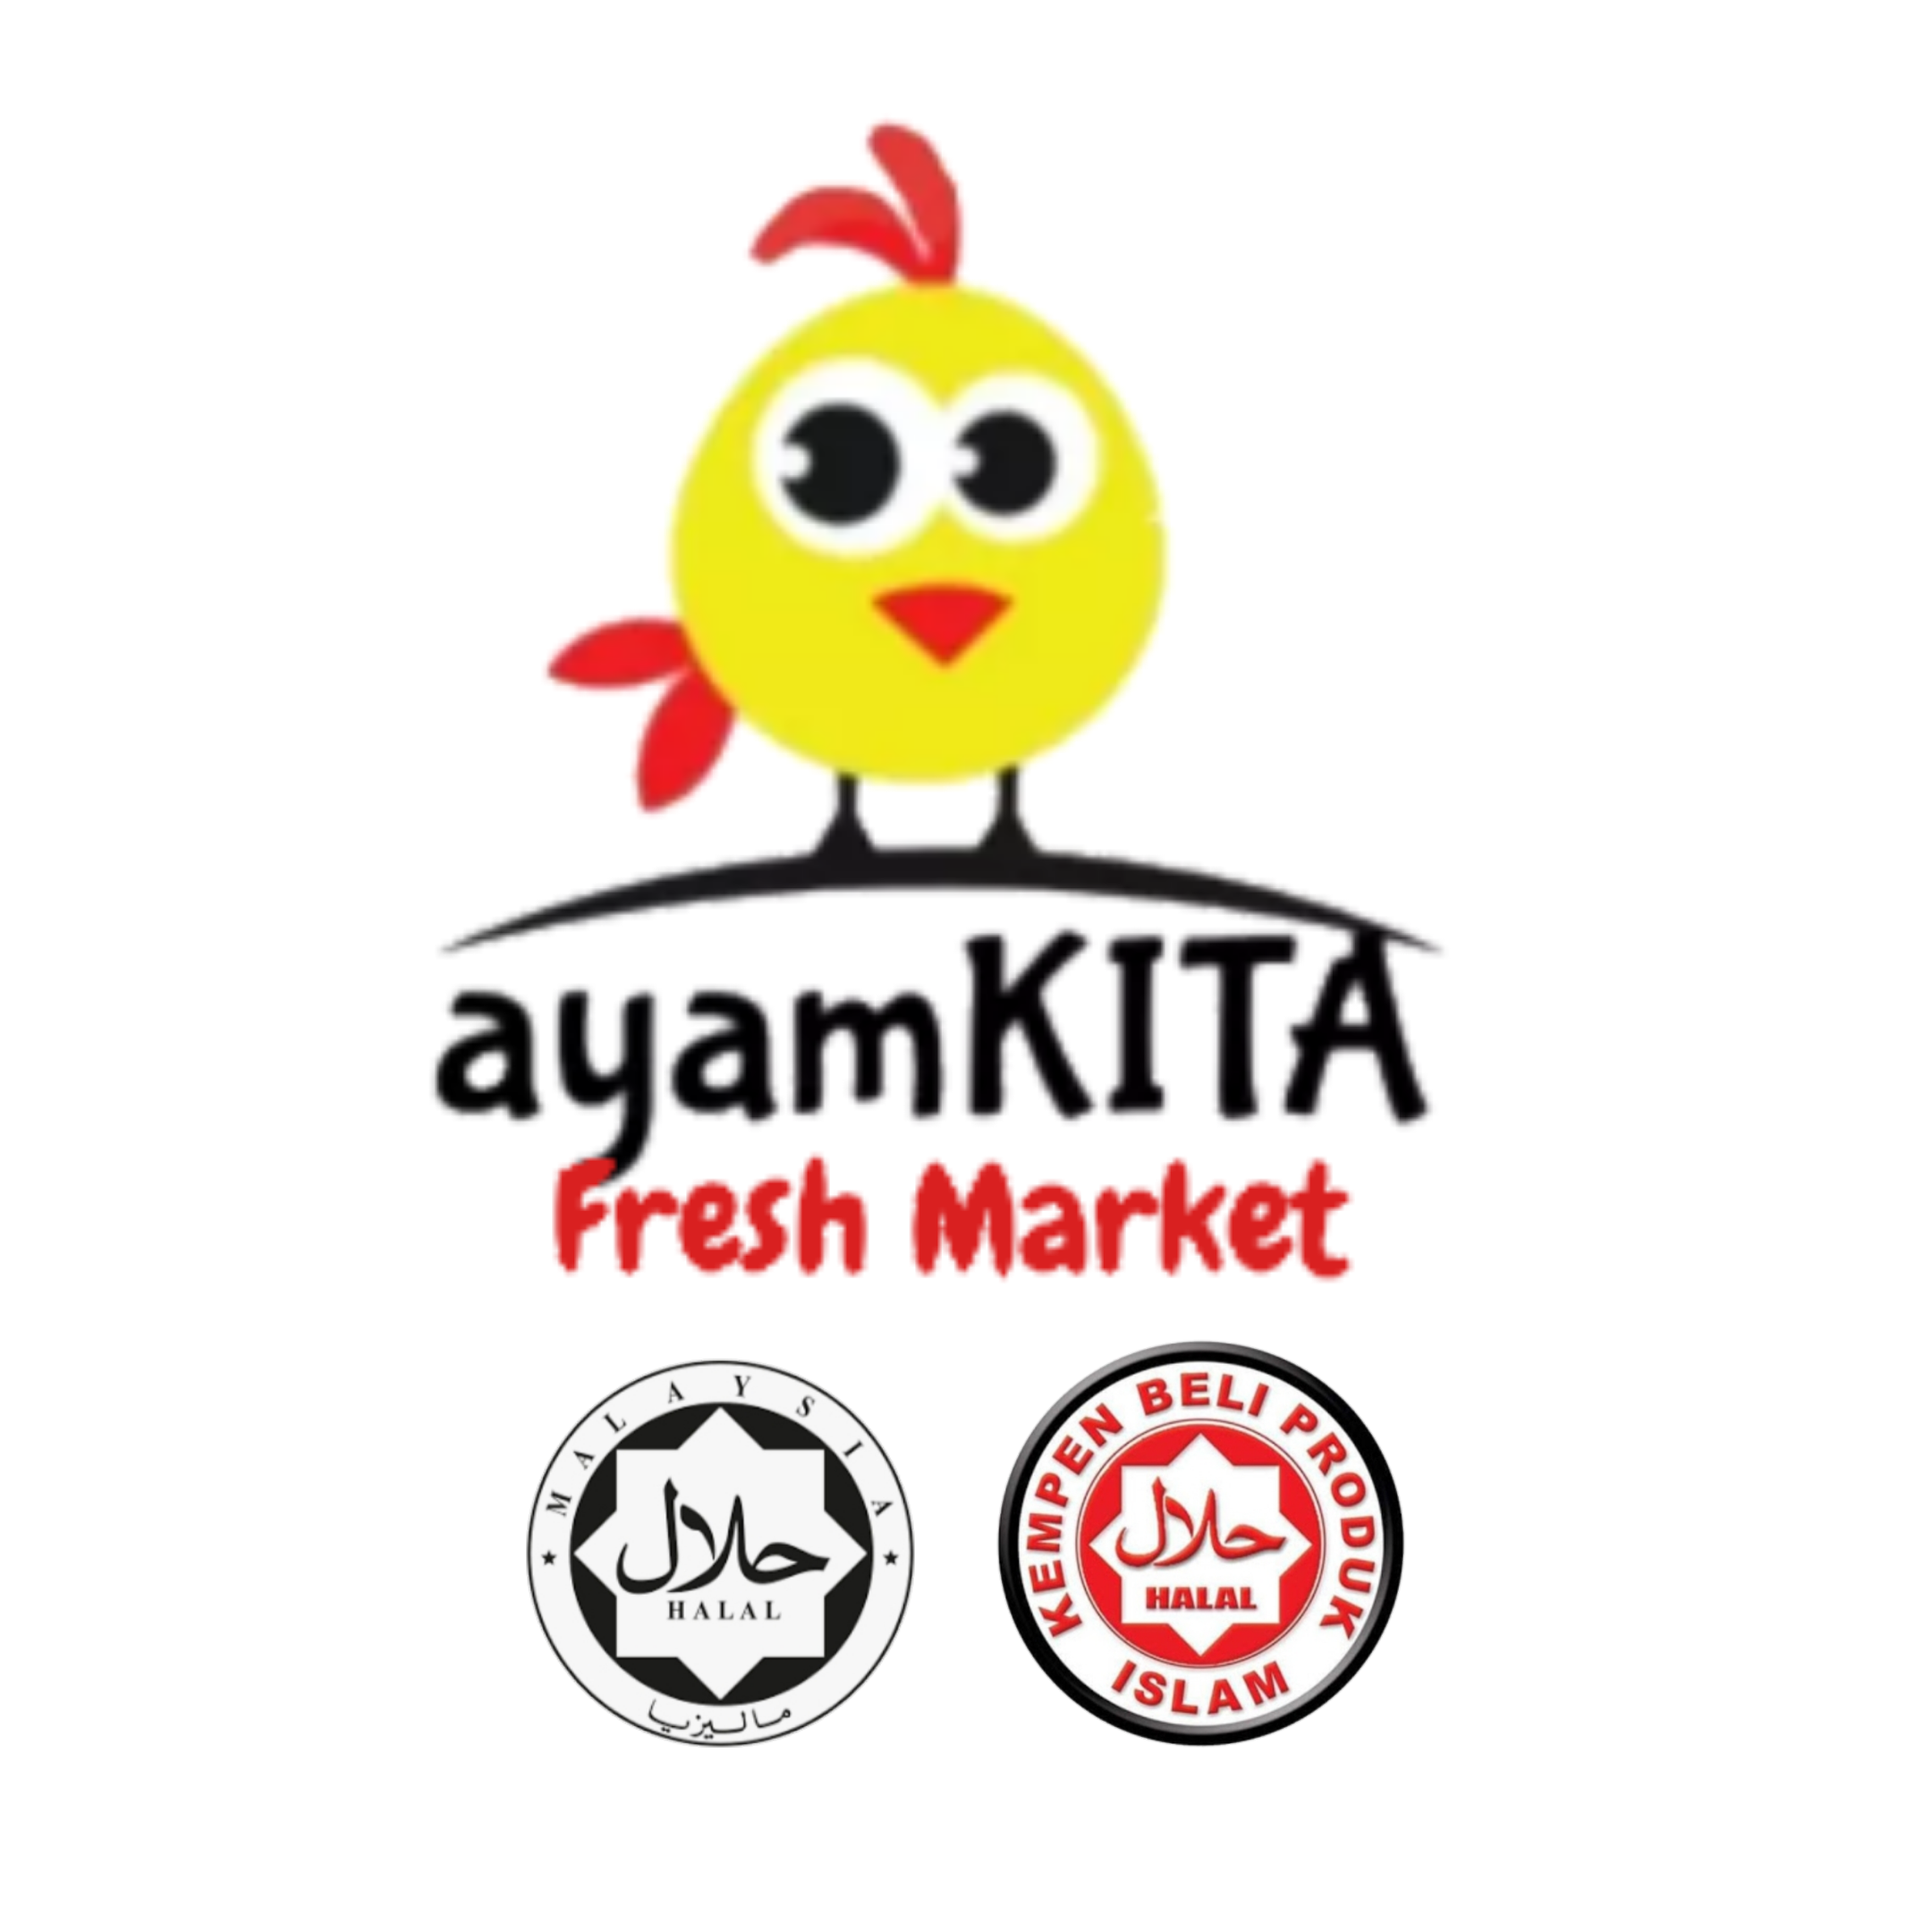 ayamkitafresh